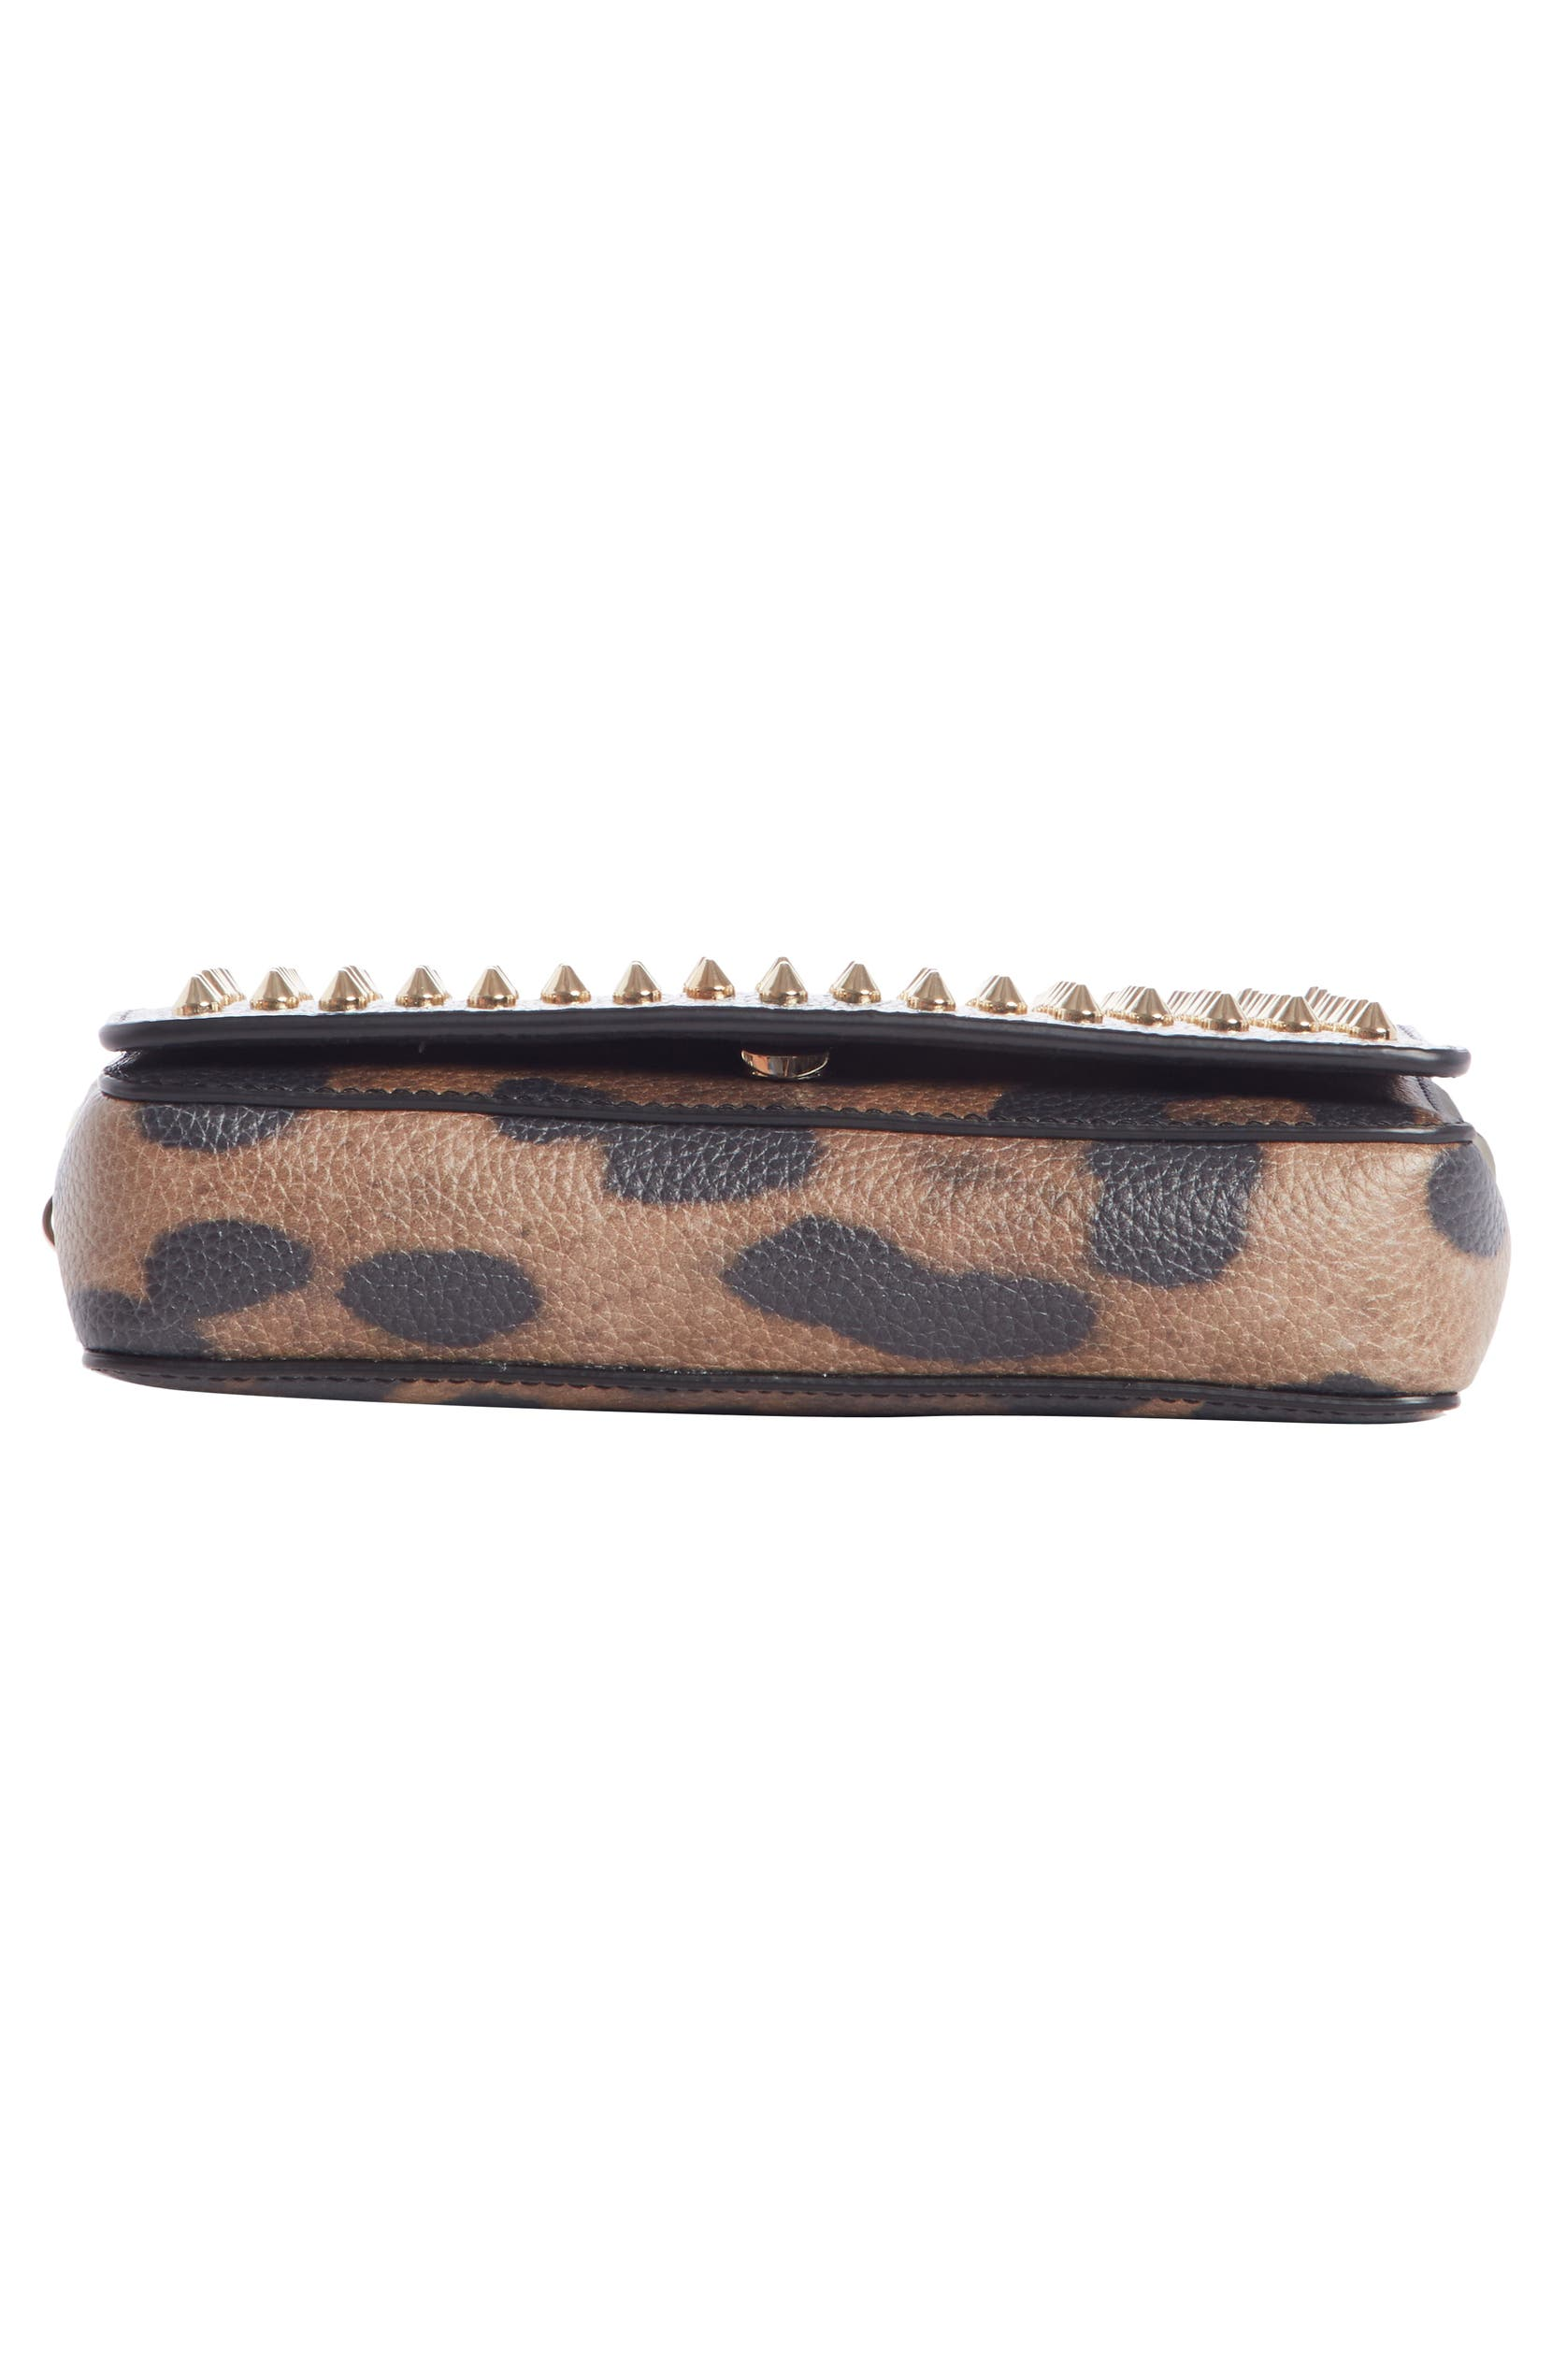 db4235babb3 Christian Louboutin Zoompouch Leopard Print Leather Clutch   Nordstrom